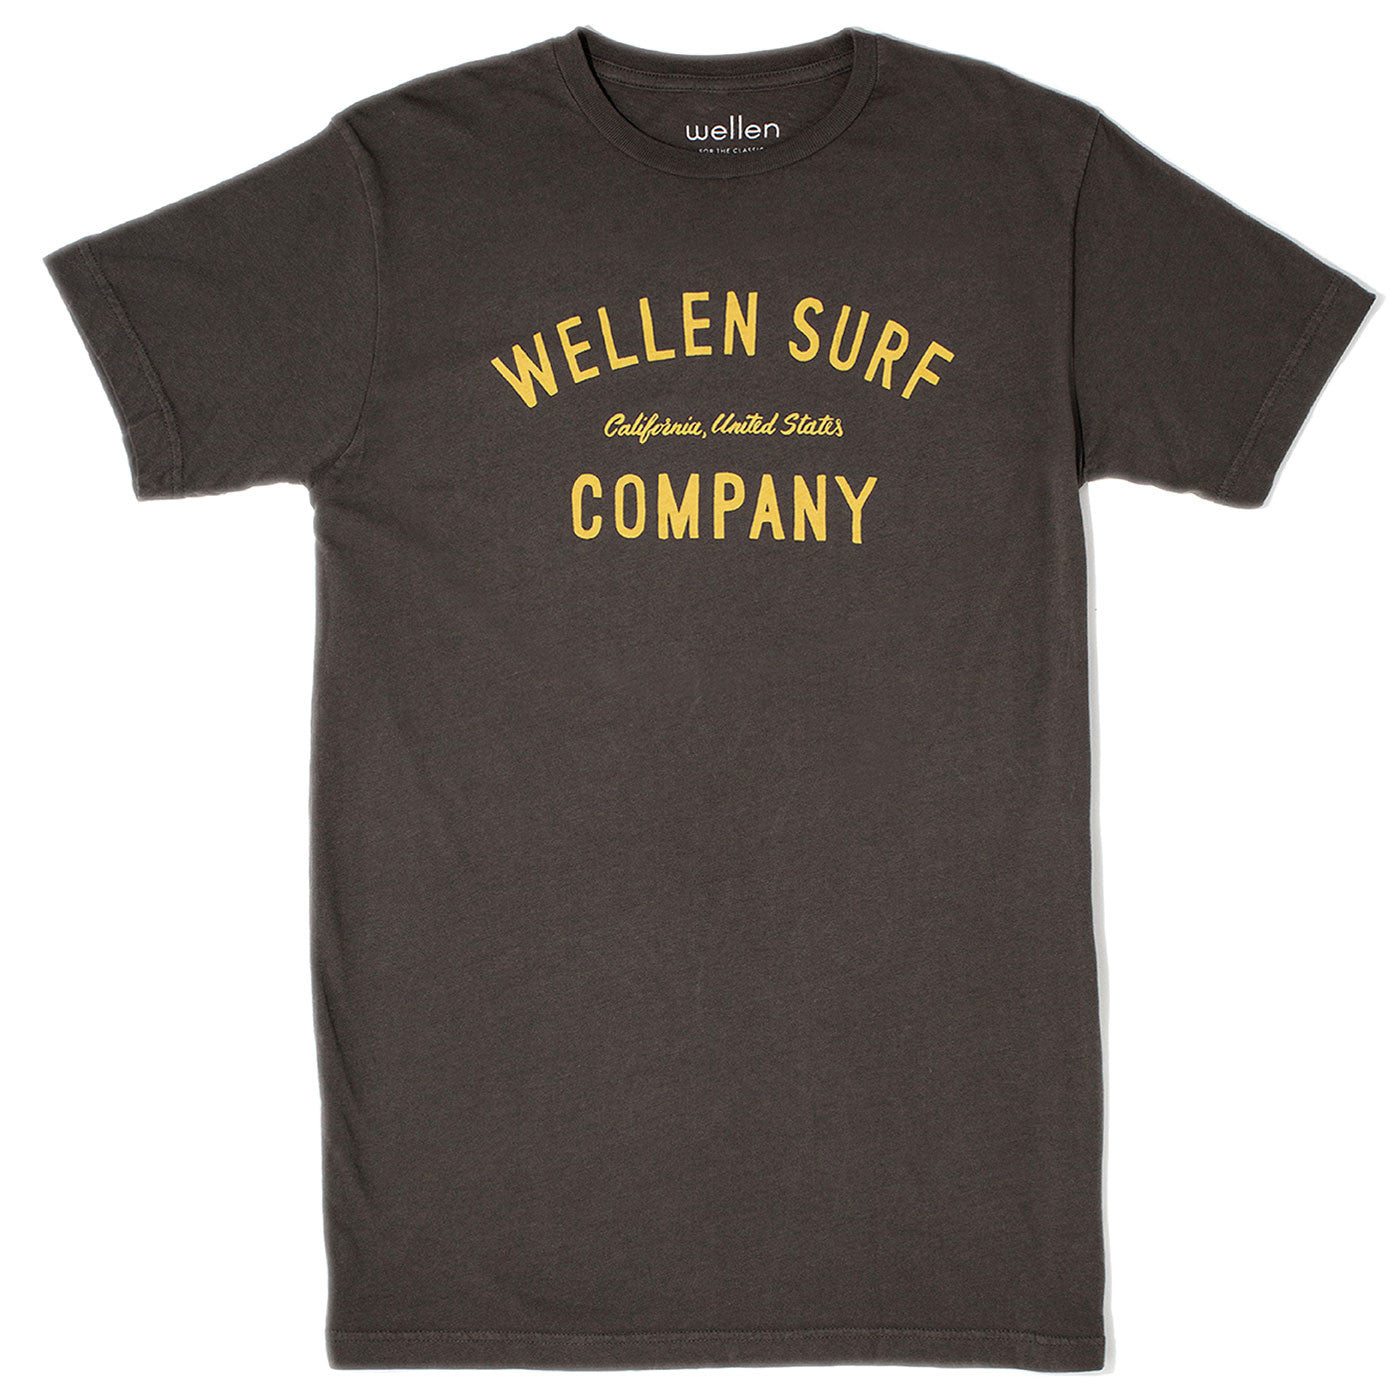 Wellen Surf Co T-Shirt (Charcoal)